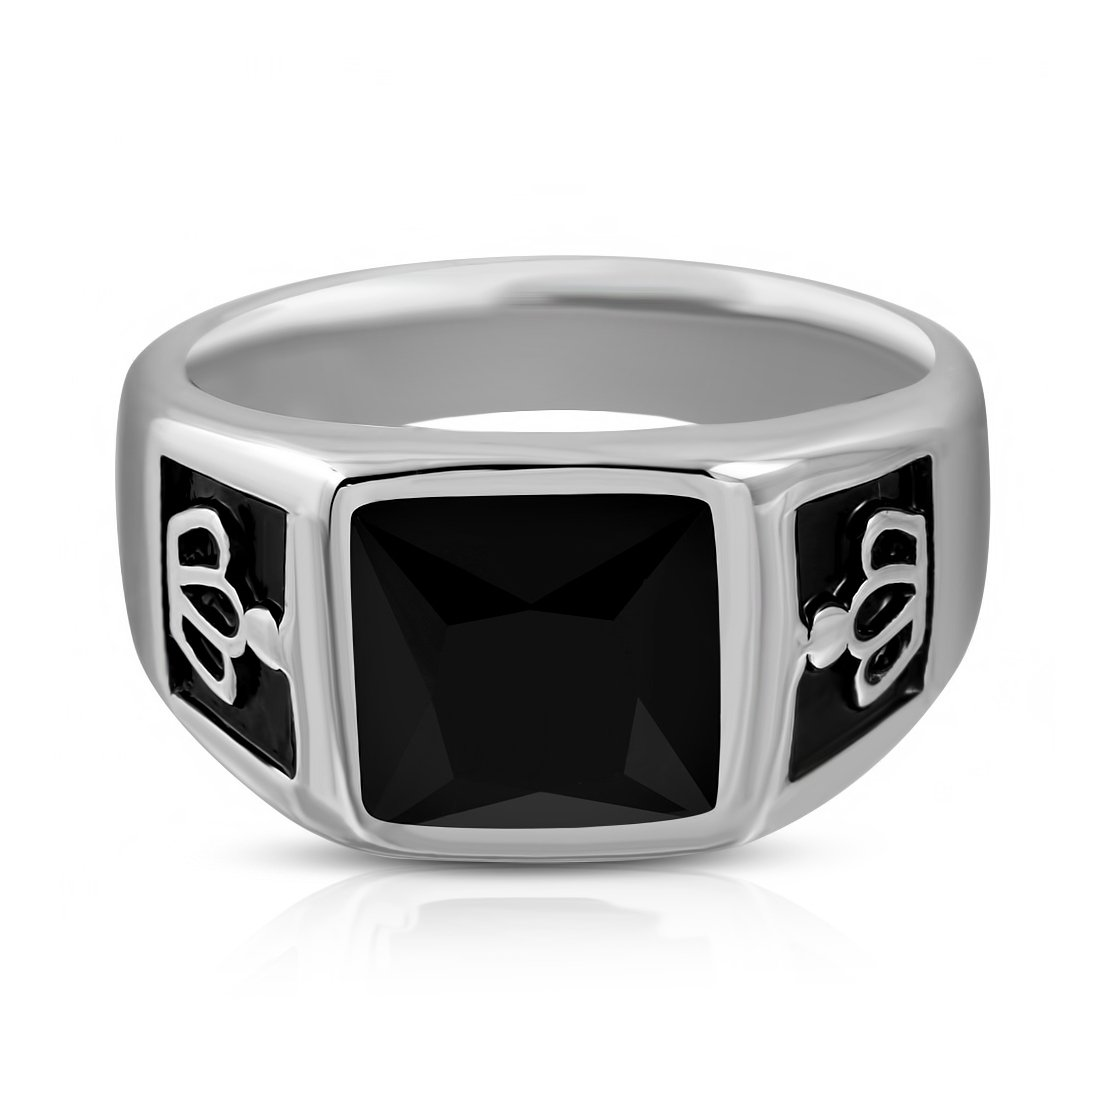 Stainless Steel 2 Color Royal Princess Crown Shank Bezel-Set Square Biker Ring with Black Glass Stone